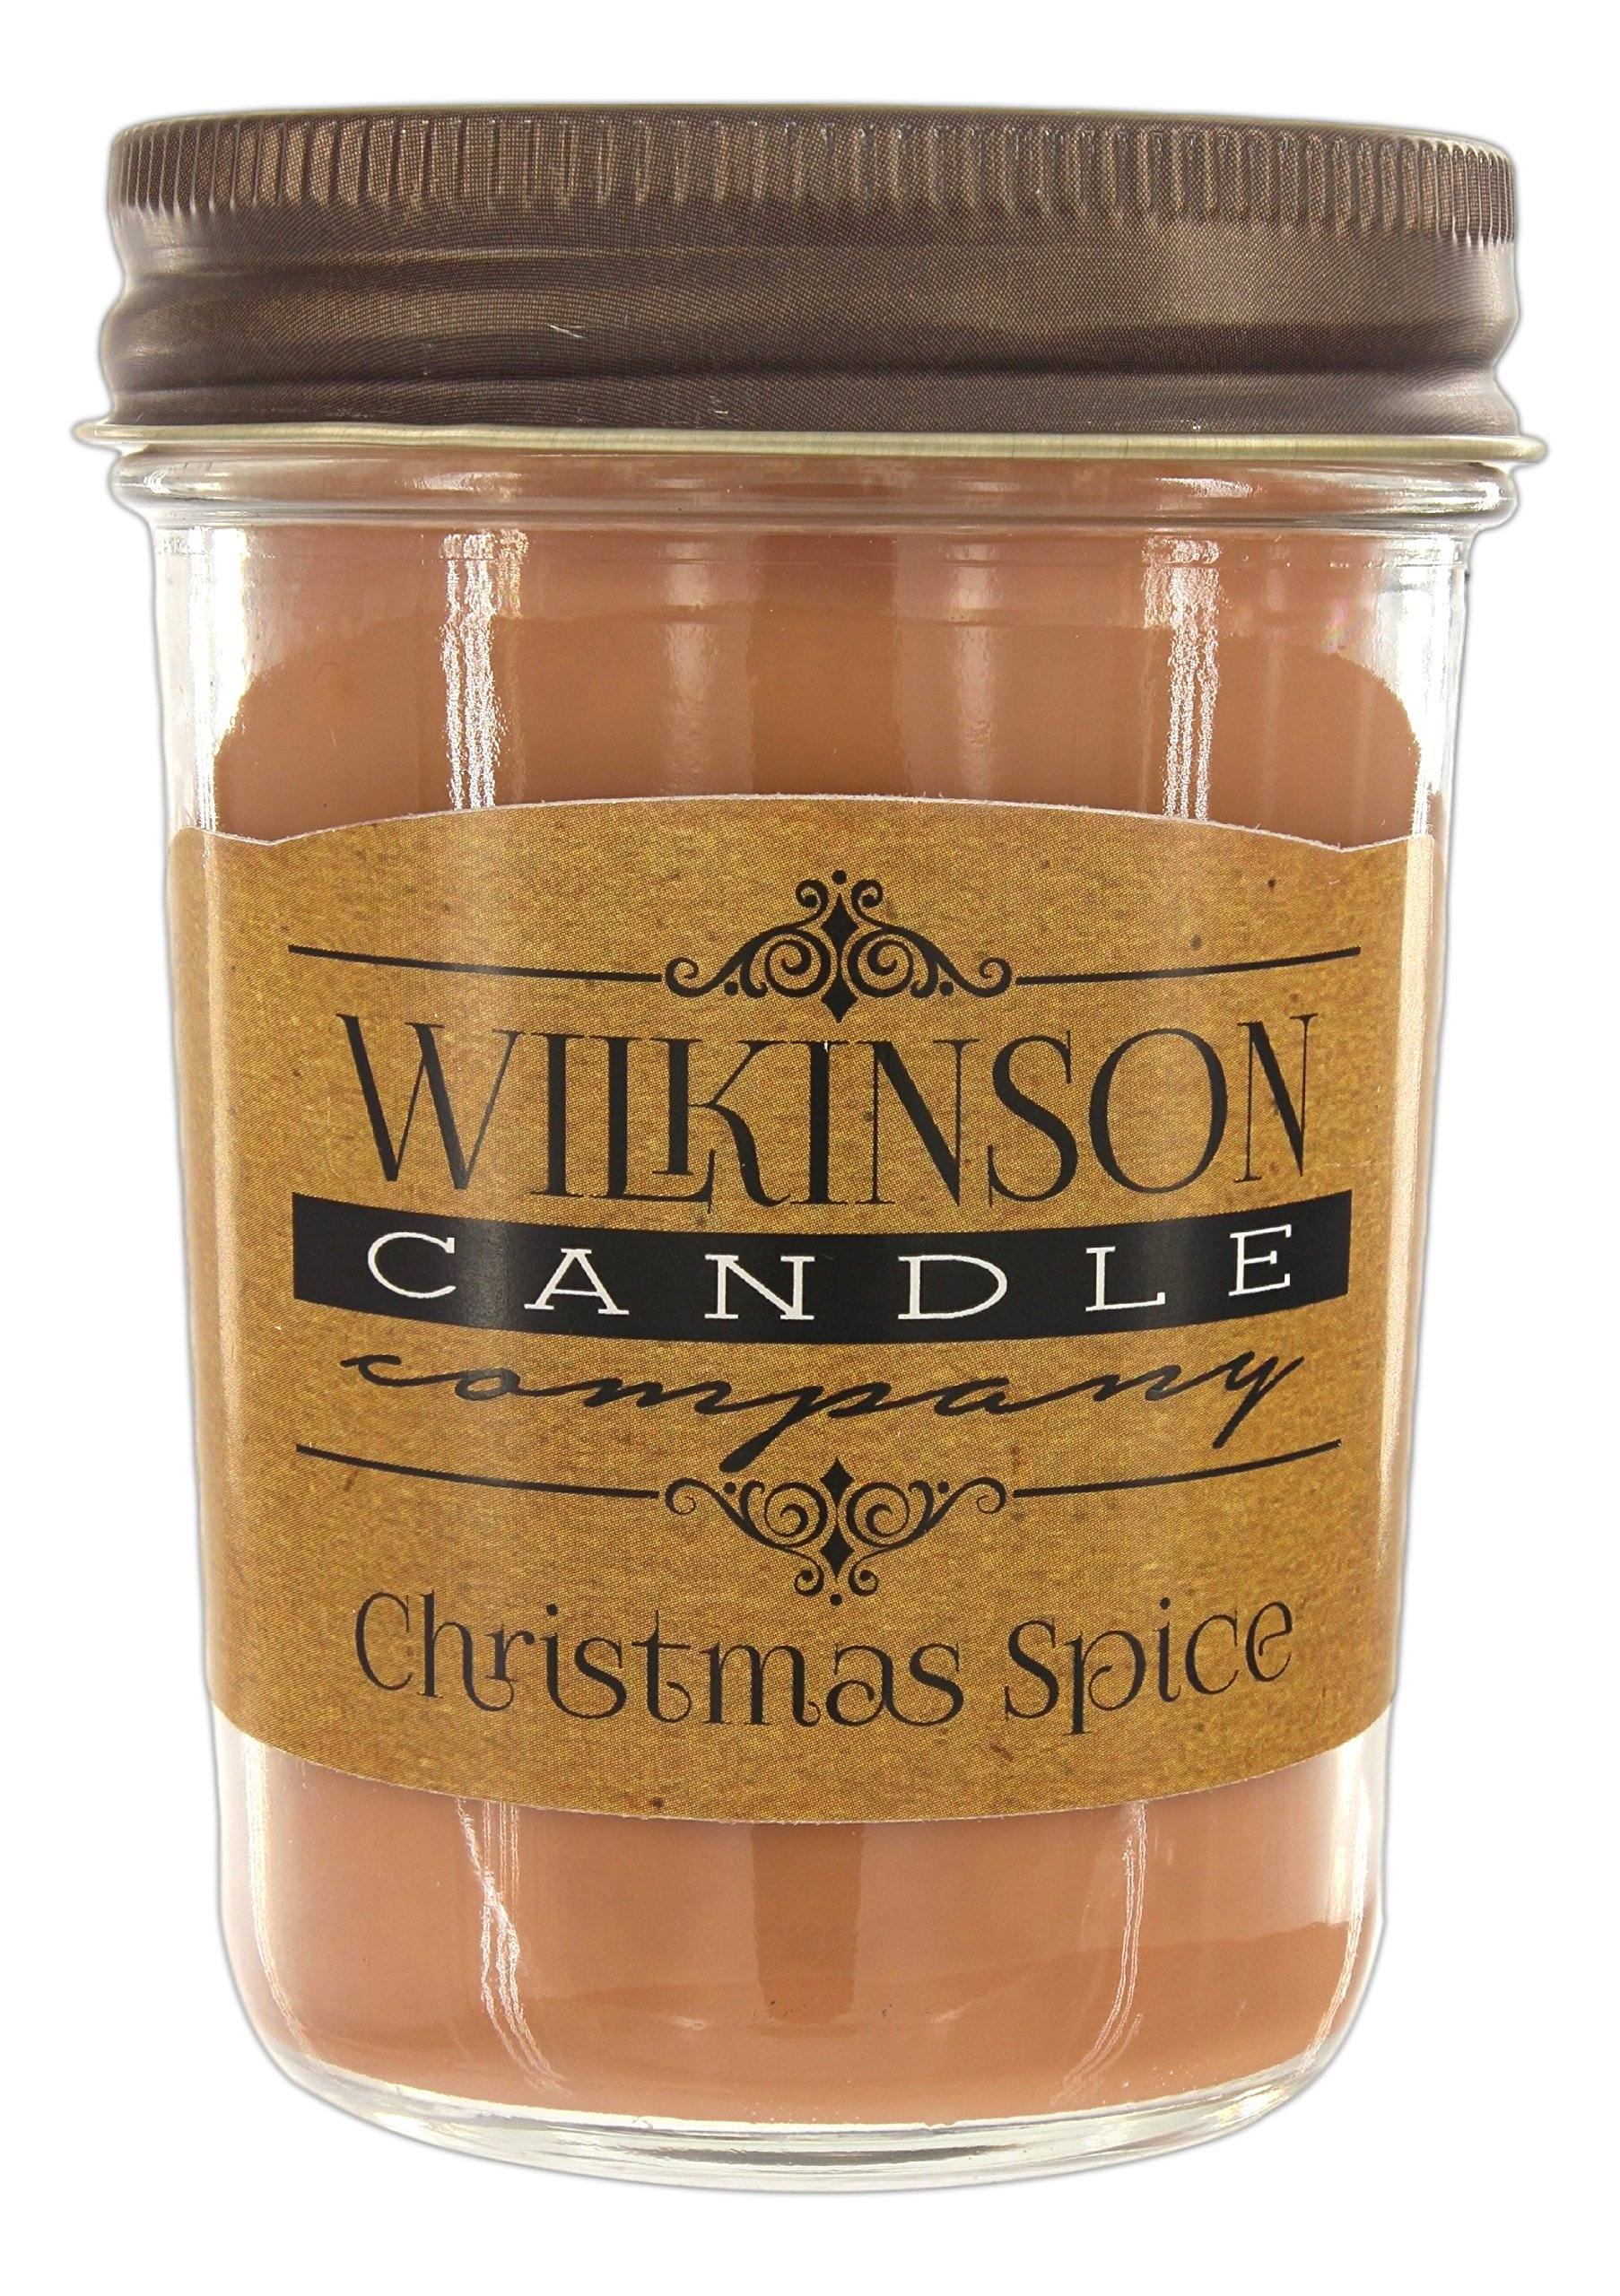 Wilkinson Candle Co. Jam Jar Soy-Lotion Candle (8 Ounce, Christmas Spice)